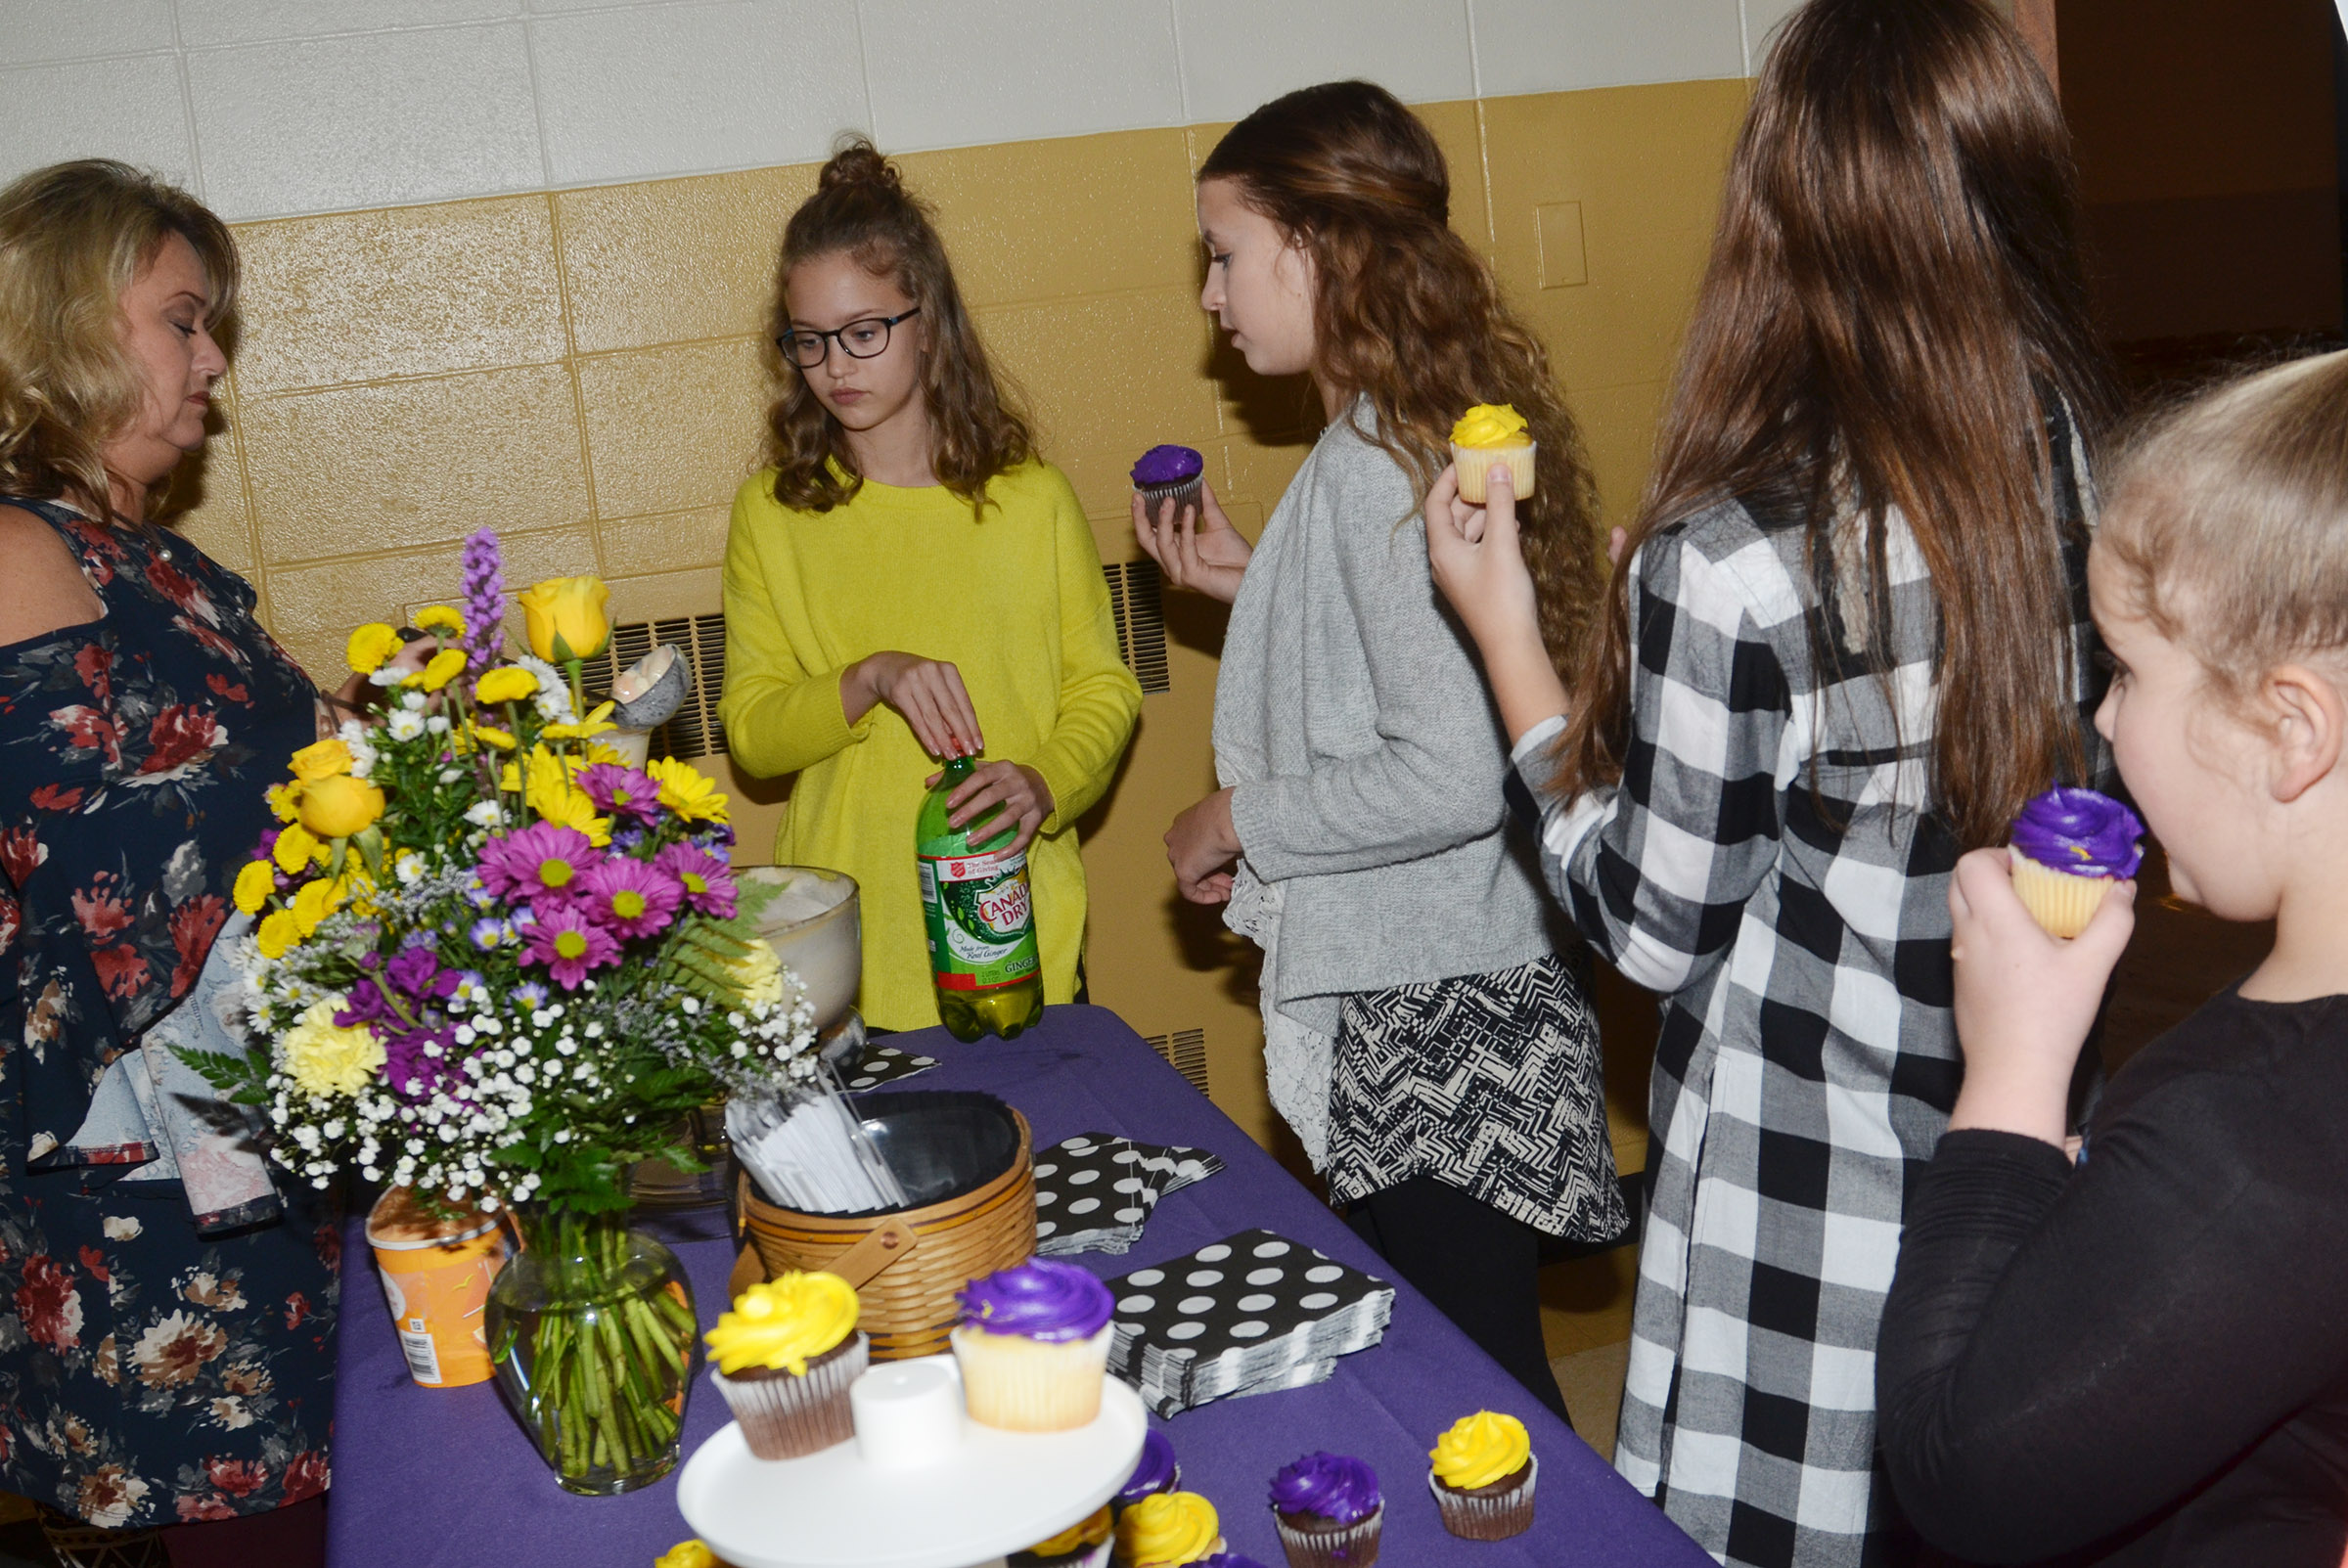 CMS Beta members are treated to cupcakes and punch after the induction ceremony.